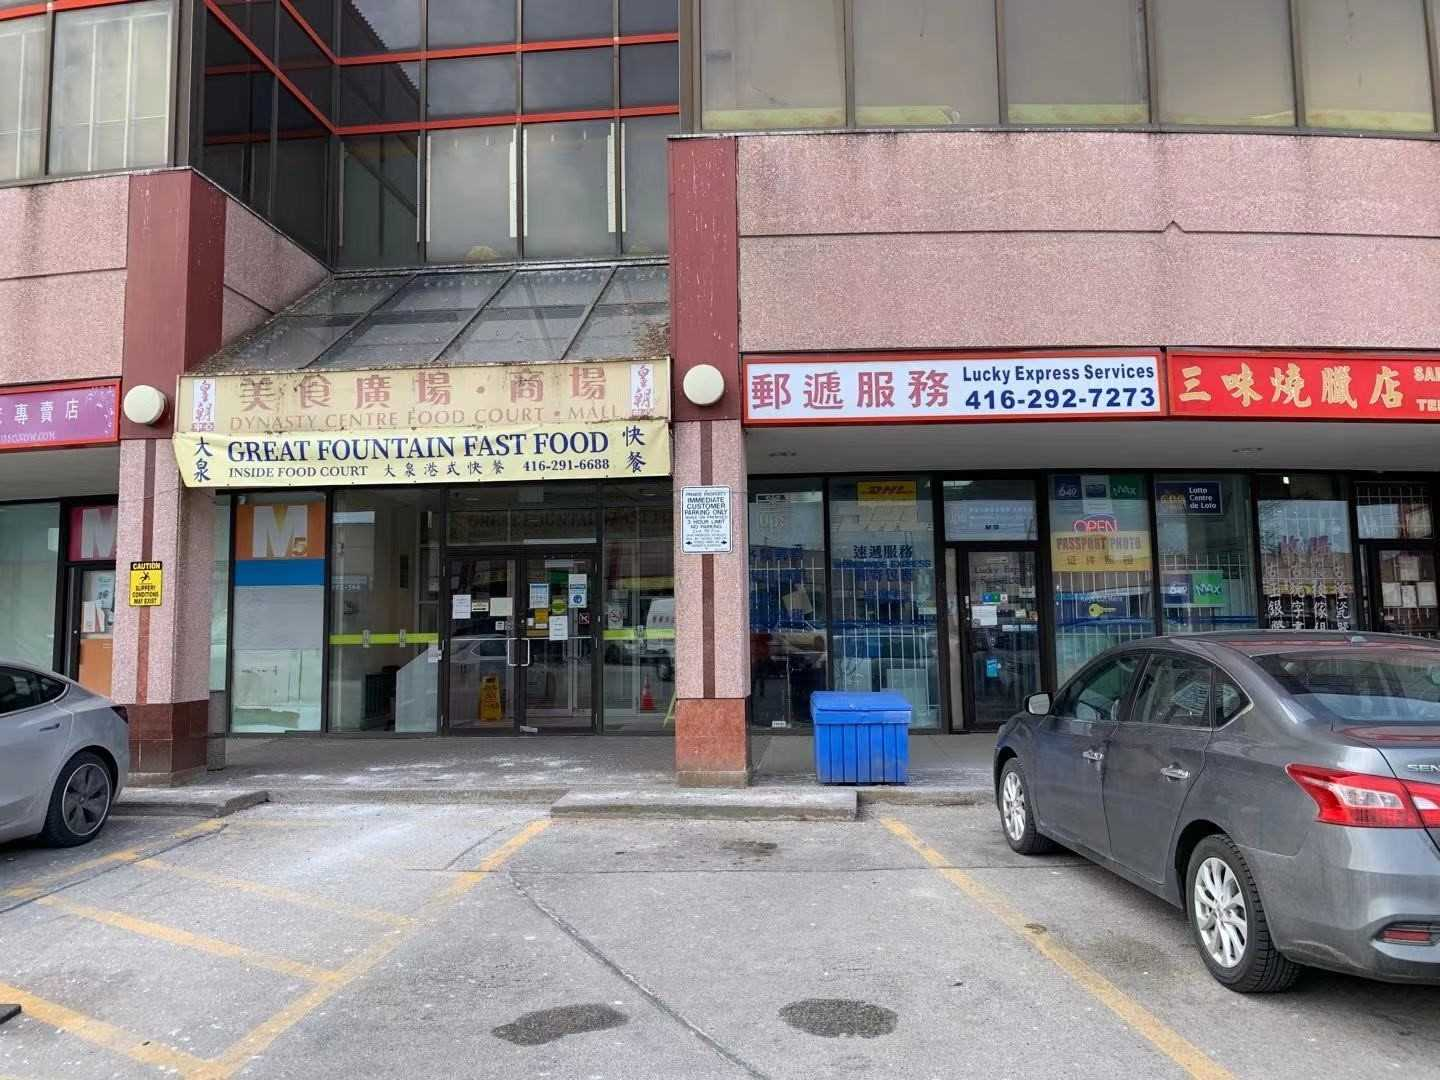 Commercial/retail For Sale In Toronto , ,Commercial/retail,For Sale,M10,Glen Watford